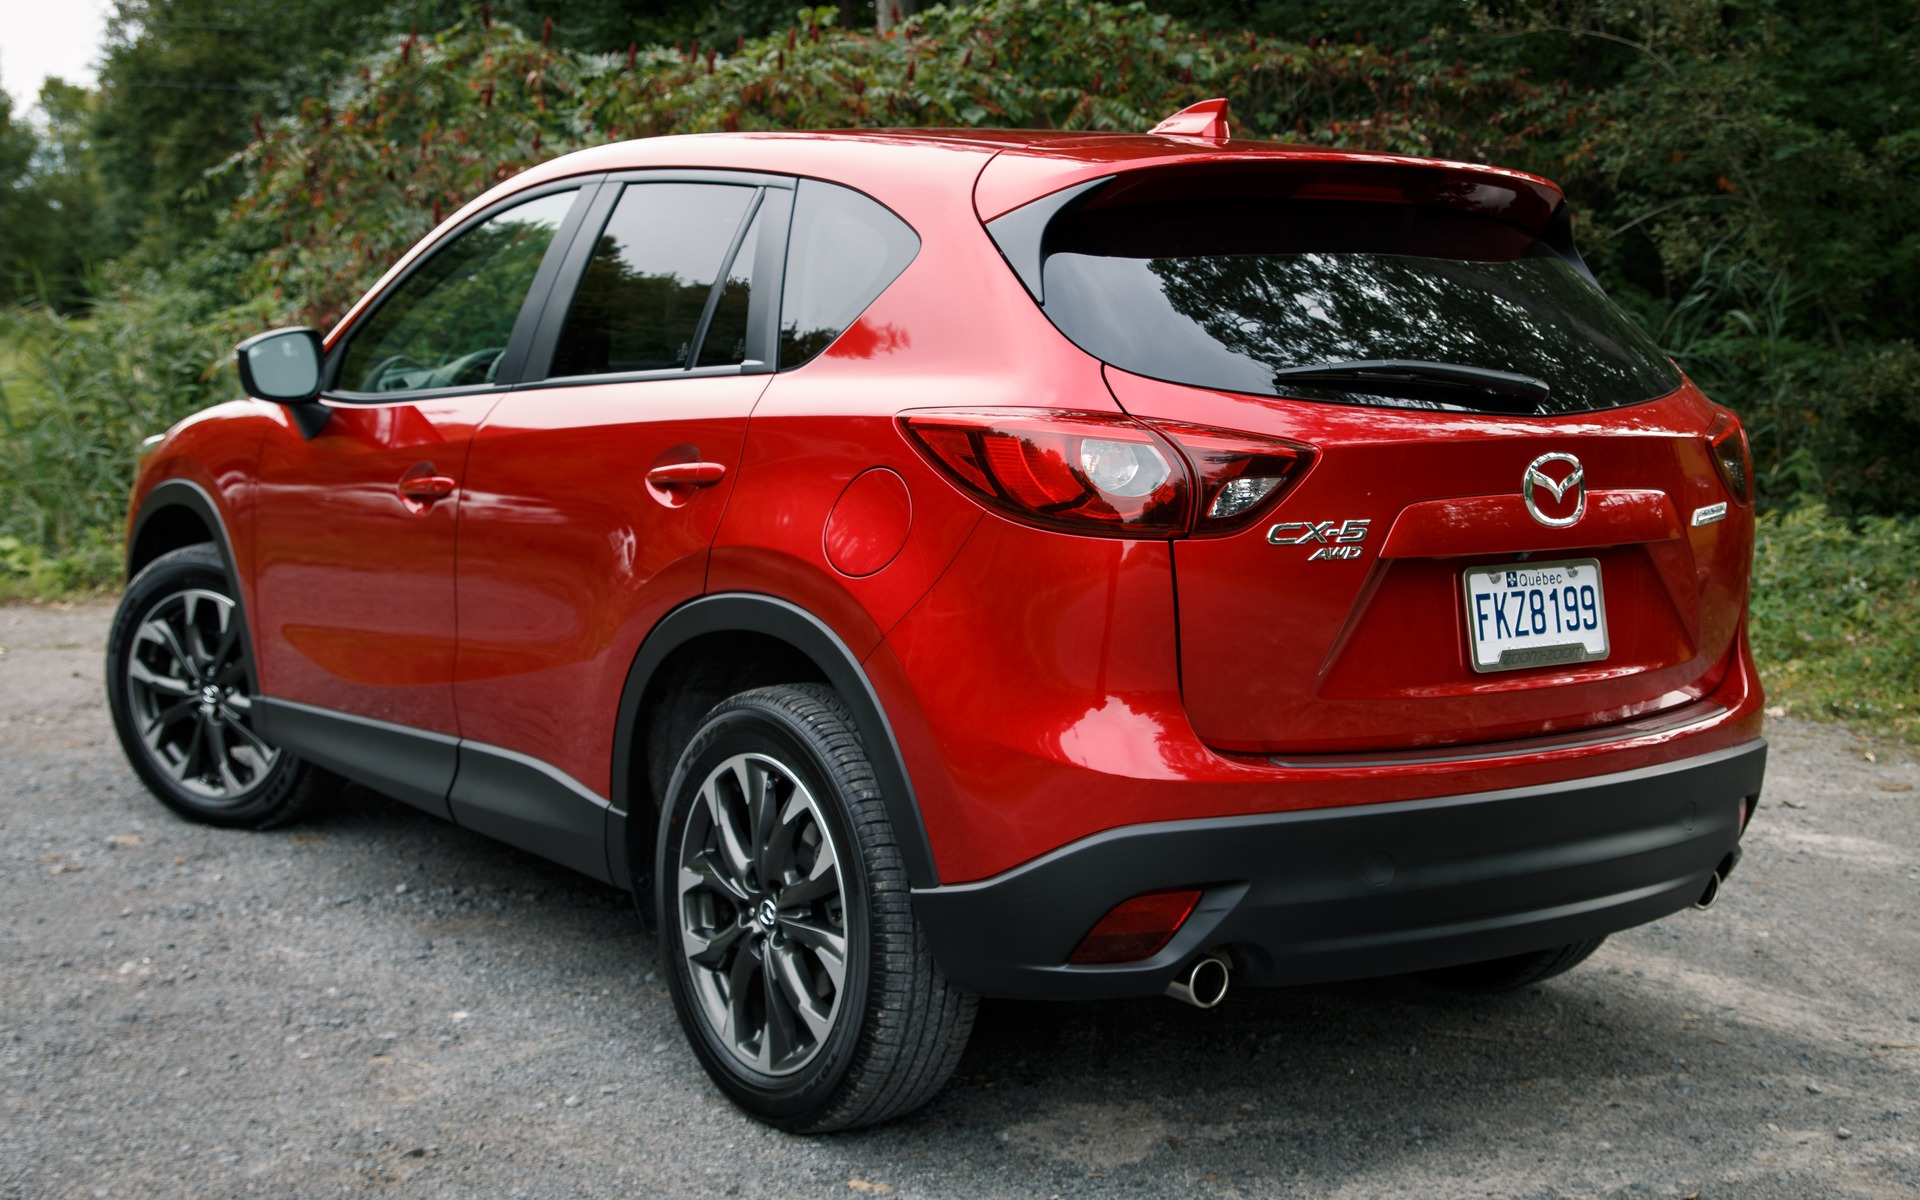 Sale Stop And Recall For The Mazda CX-5 - 2/9